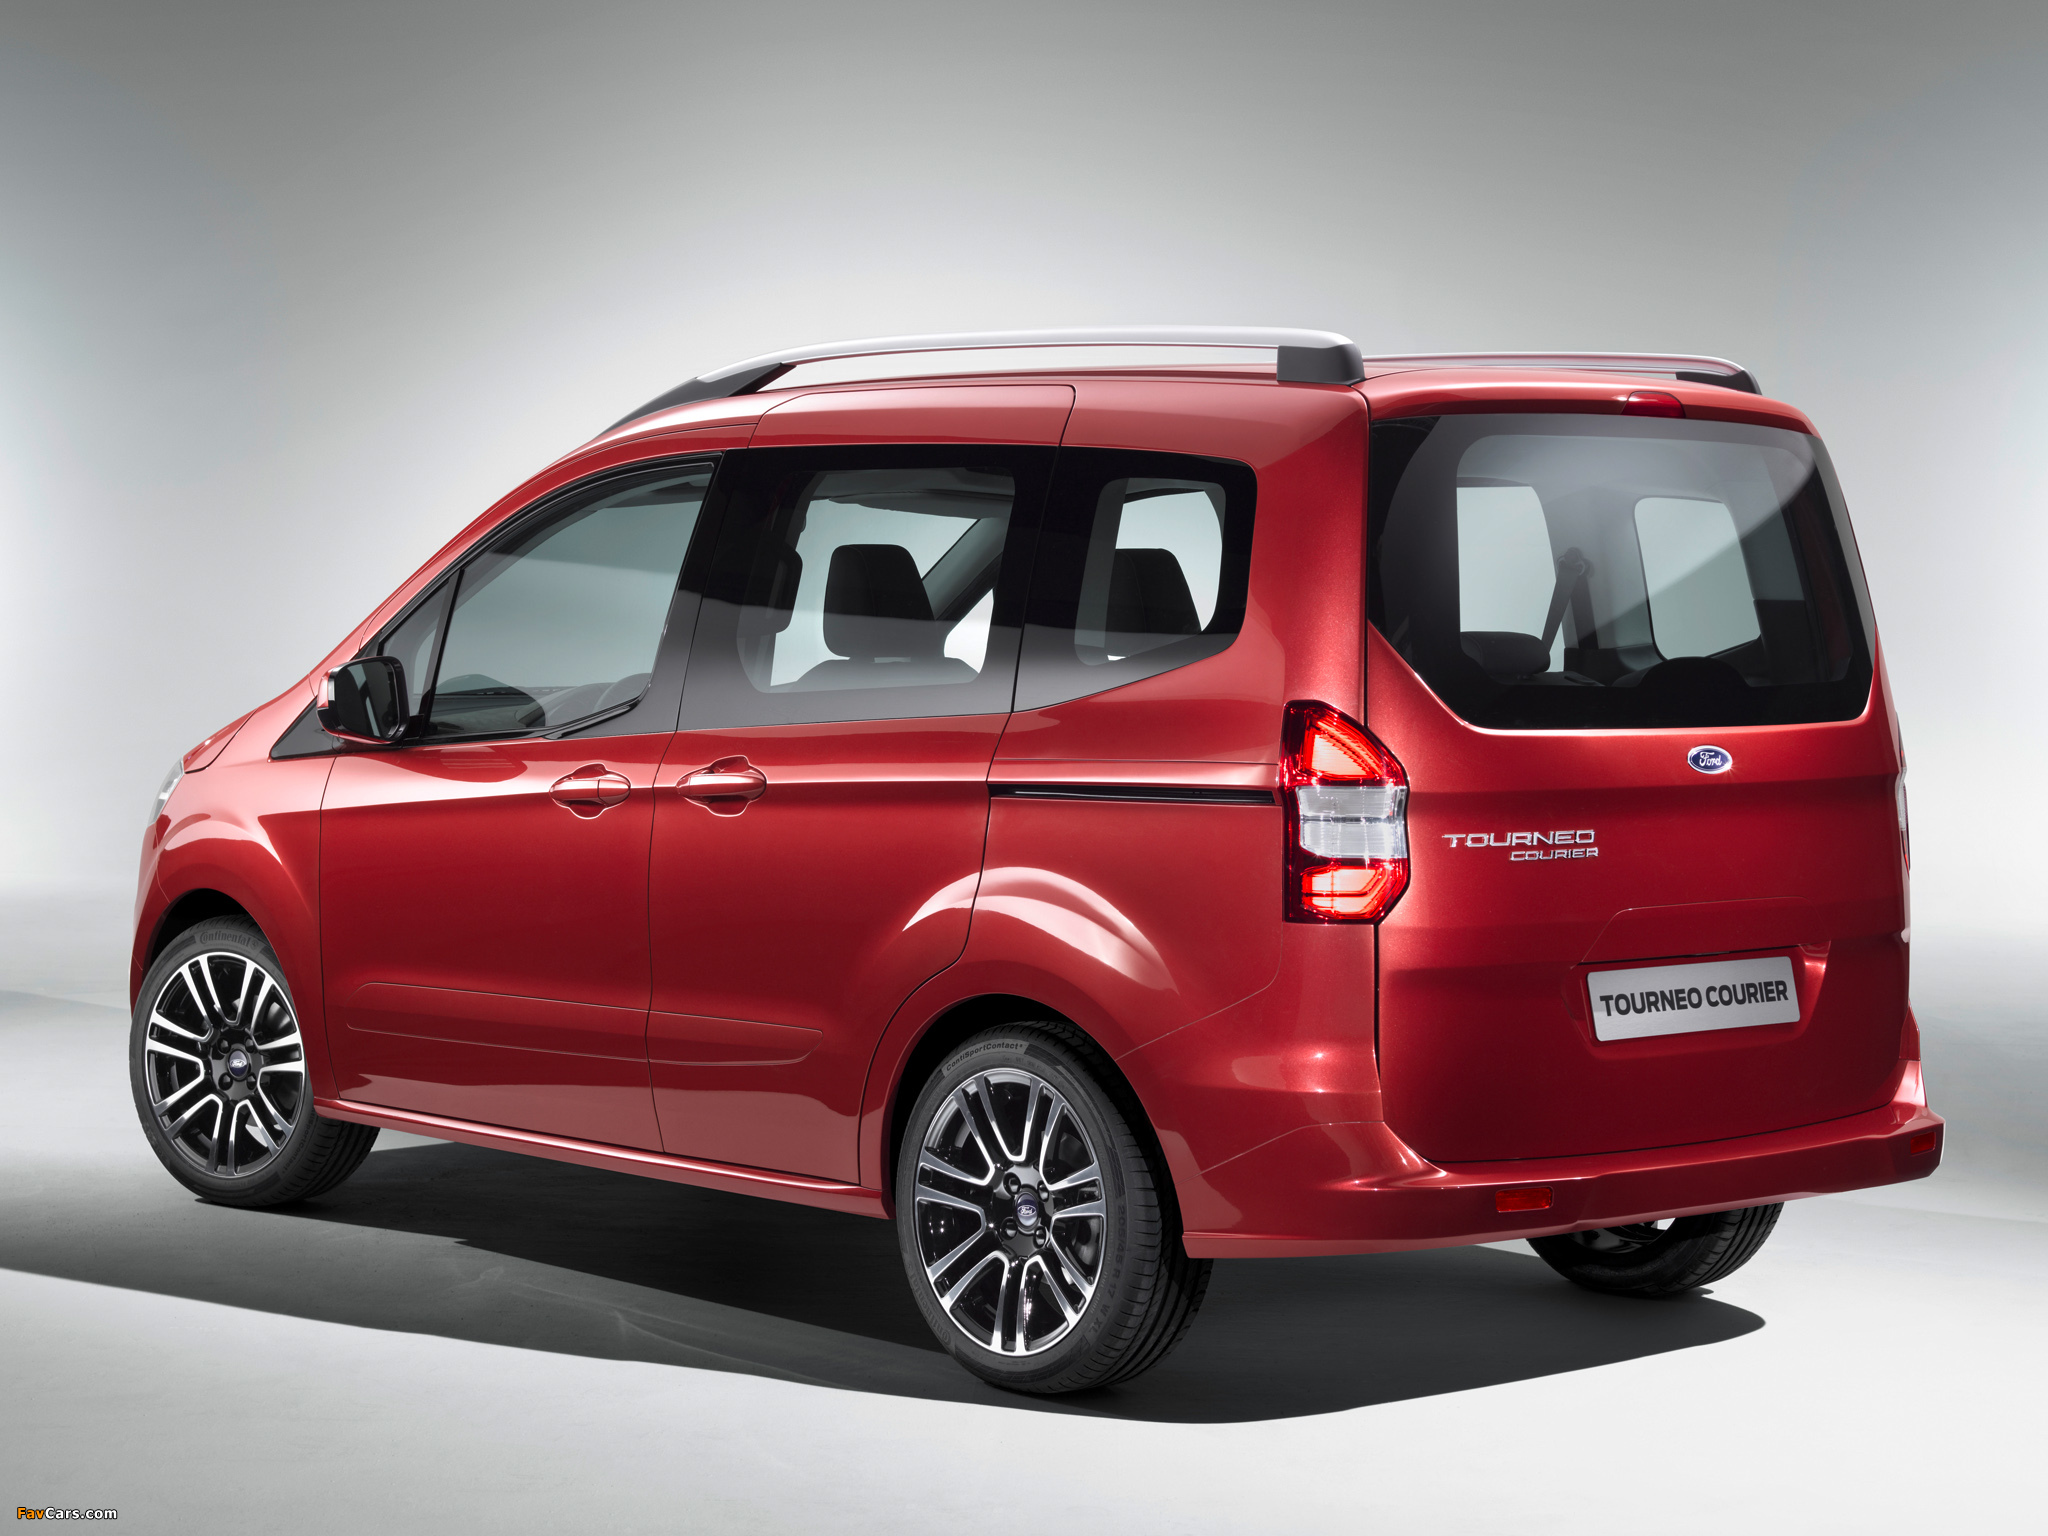 ford tourneo courier 2013 wallpapers 2048x1536. Black Bedroom Furniture Sets. Home Design Ideas